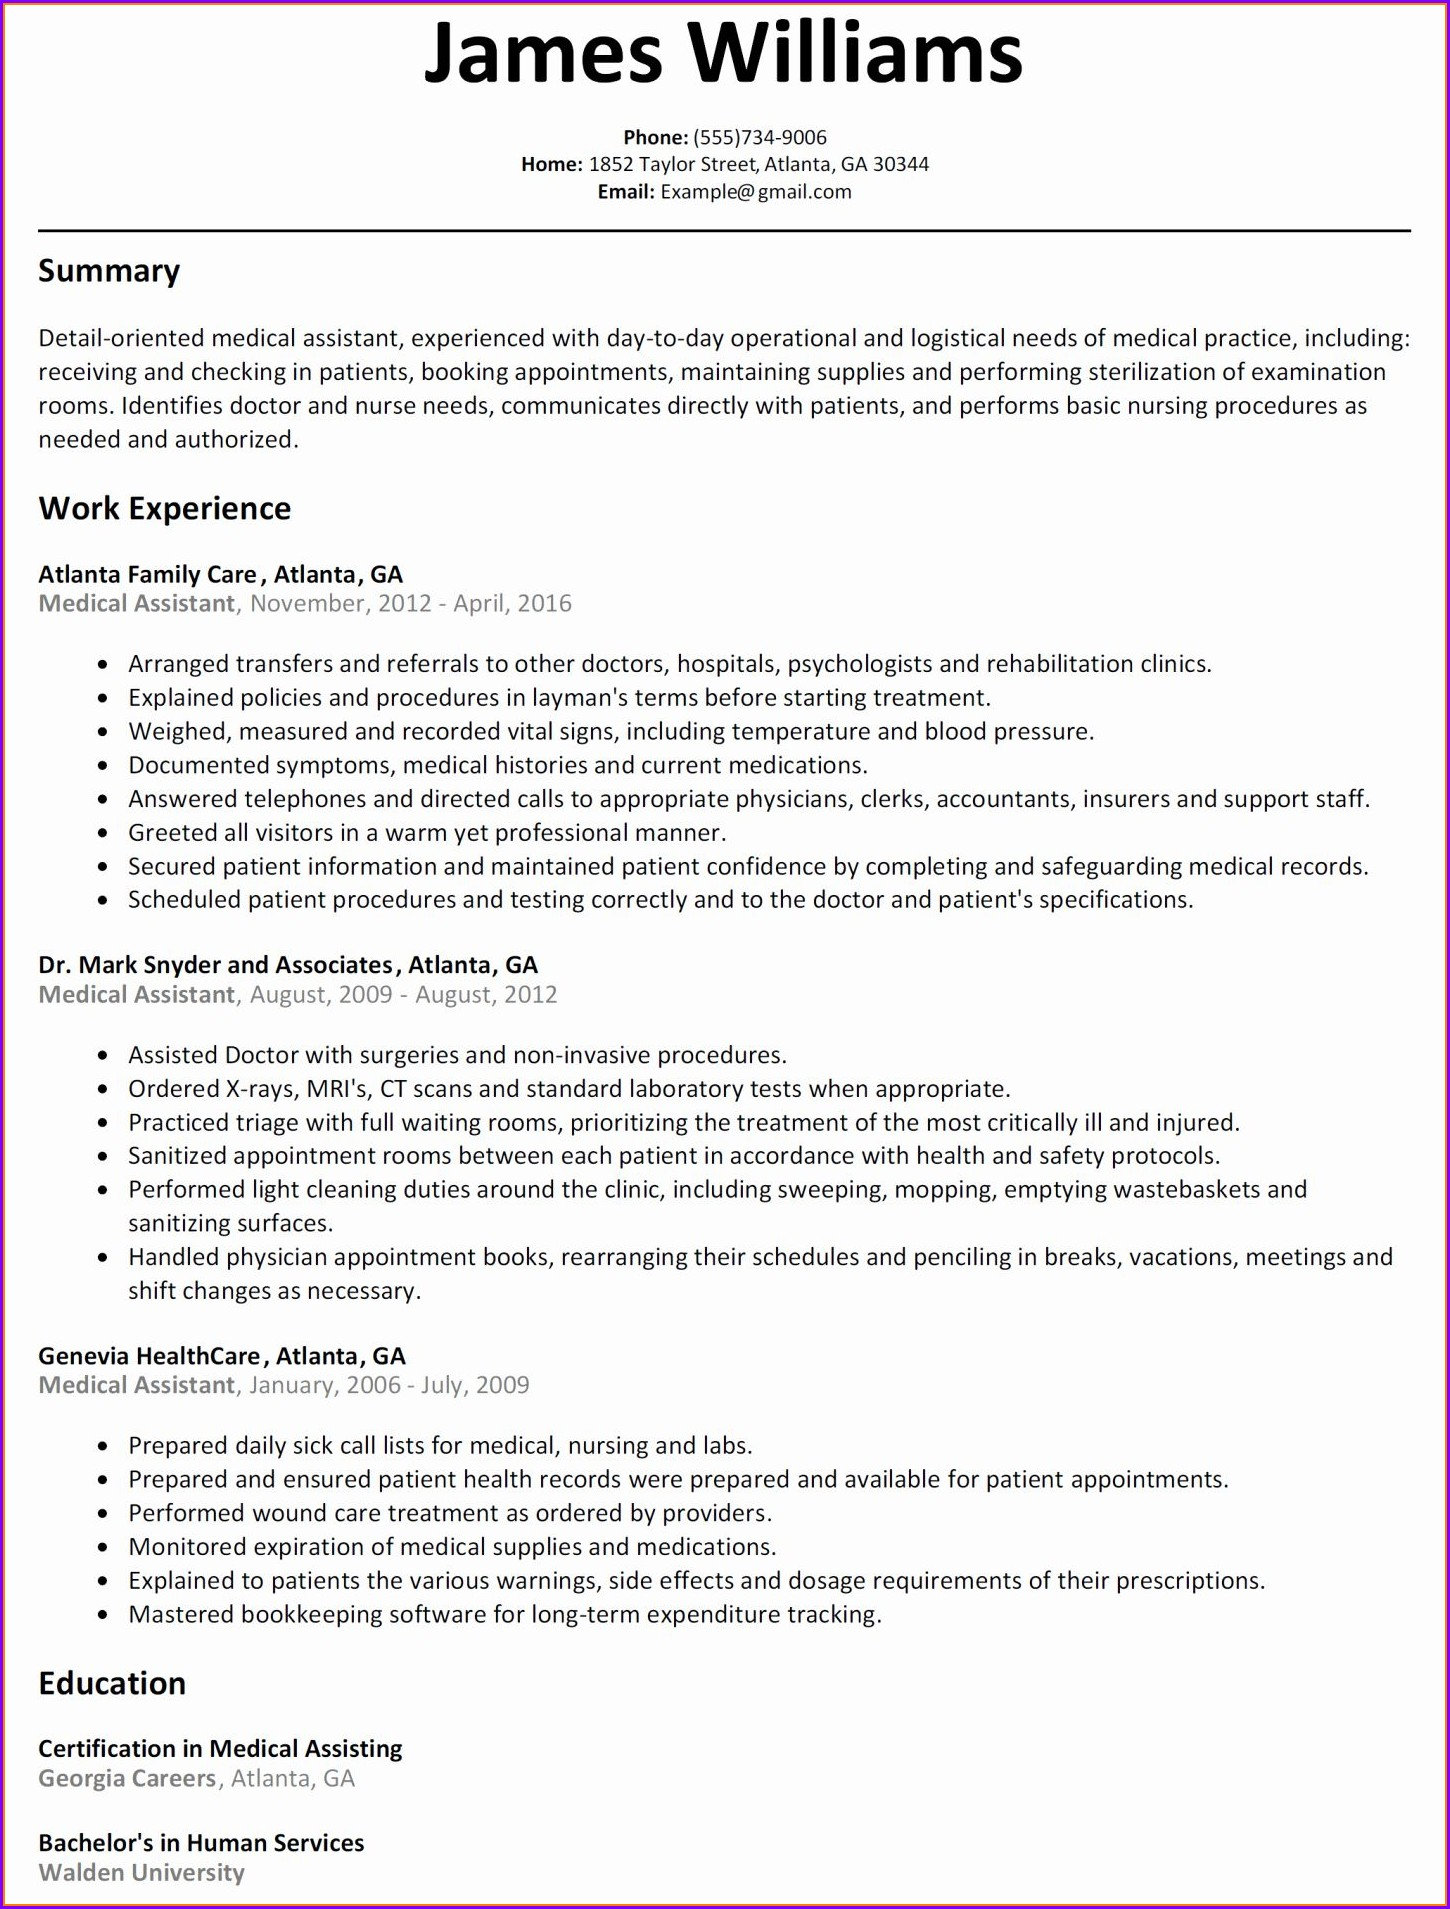 Medical Assistant Resume Samples For Students